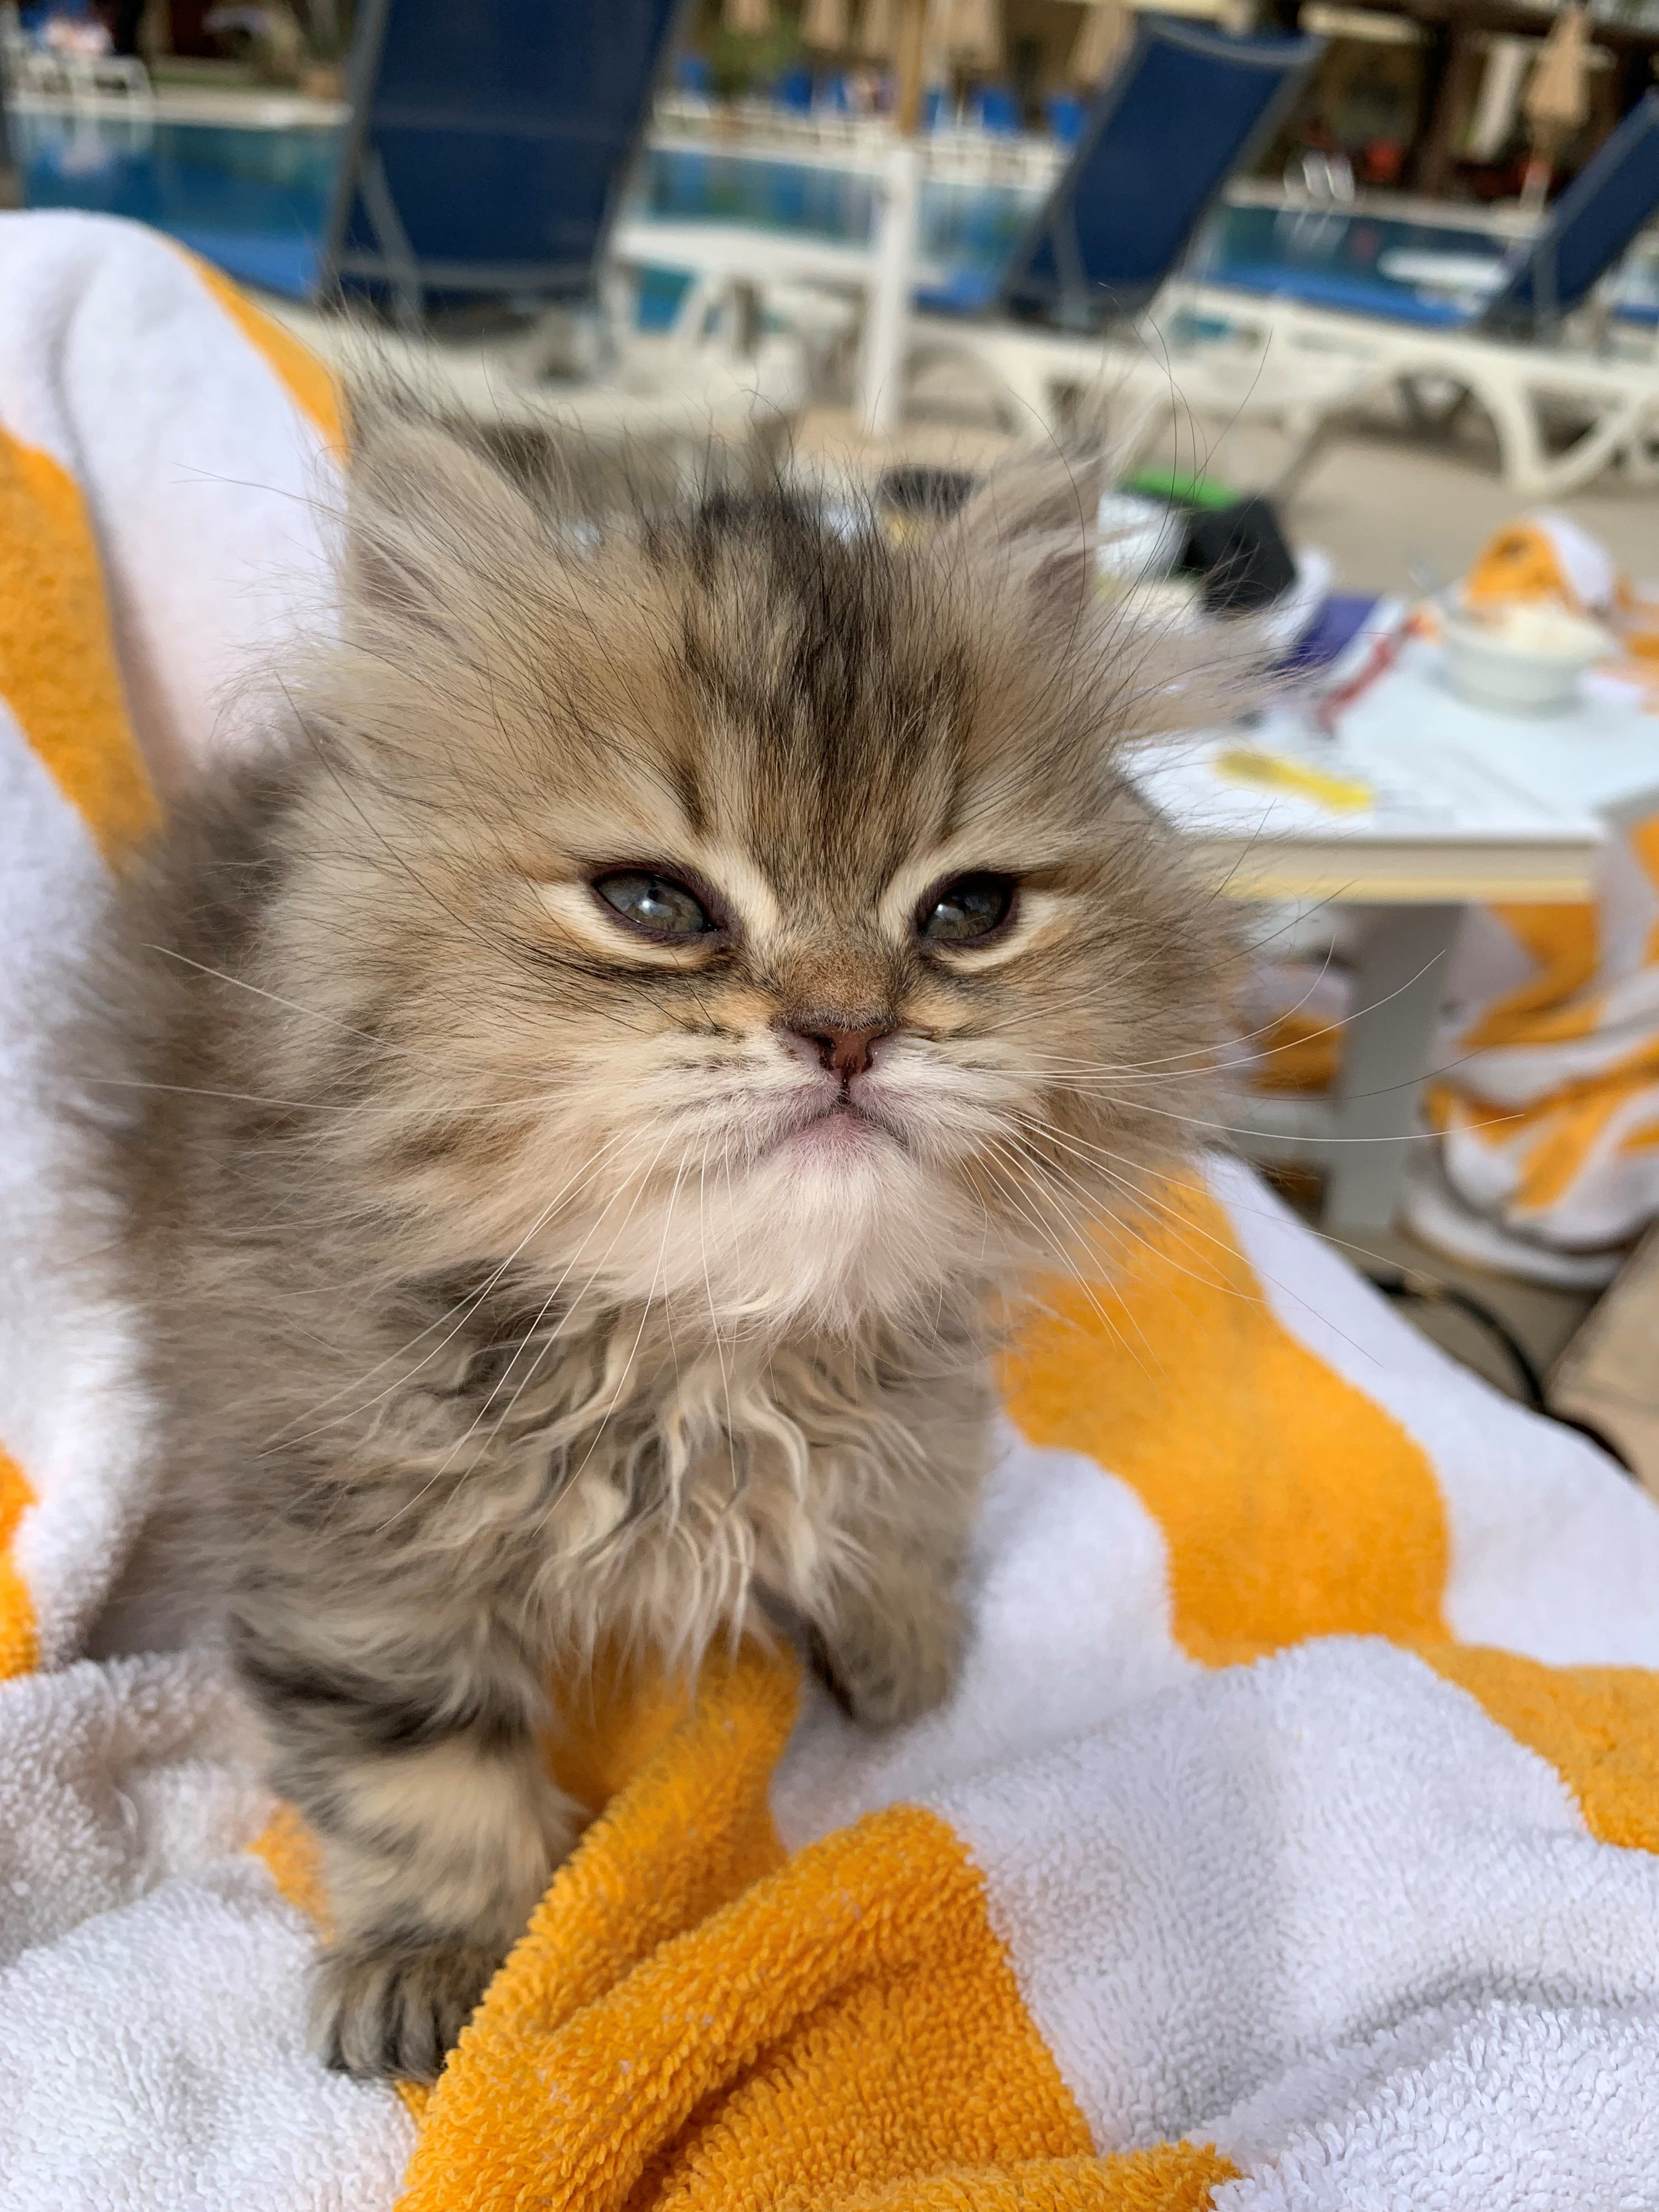 Sip & Purr Cat Café Rescues Homeless Kitten in Cairo, Egypt